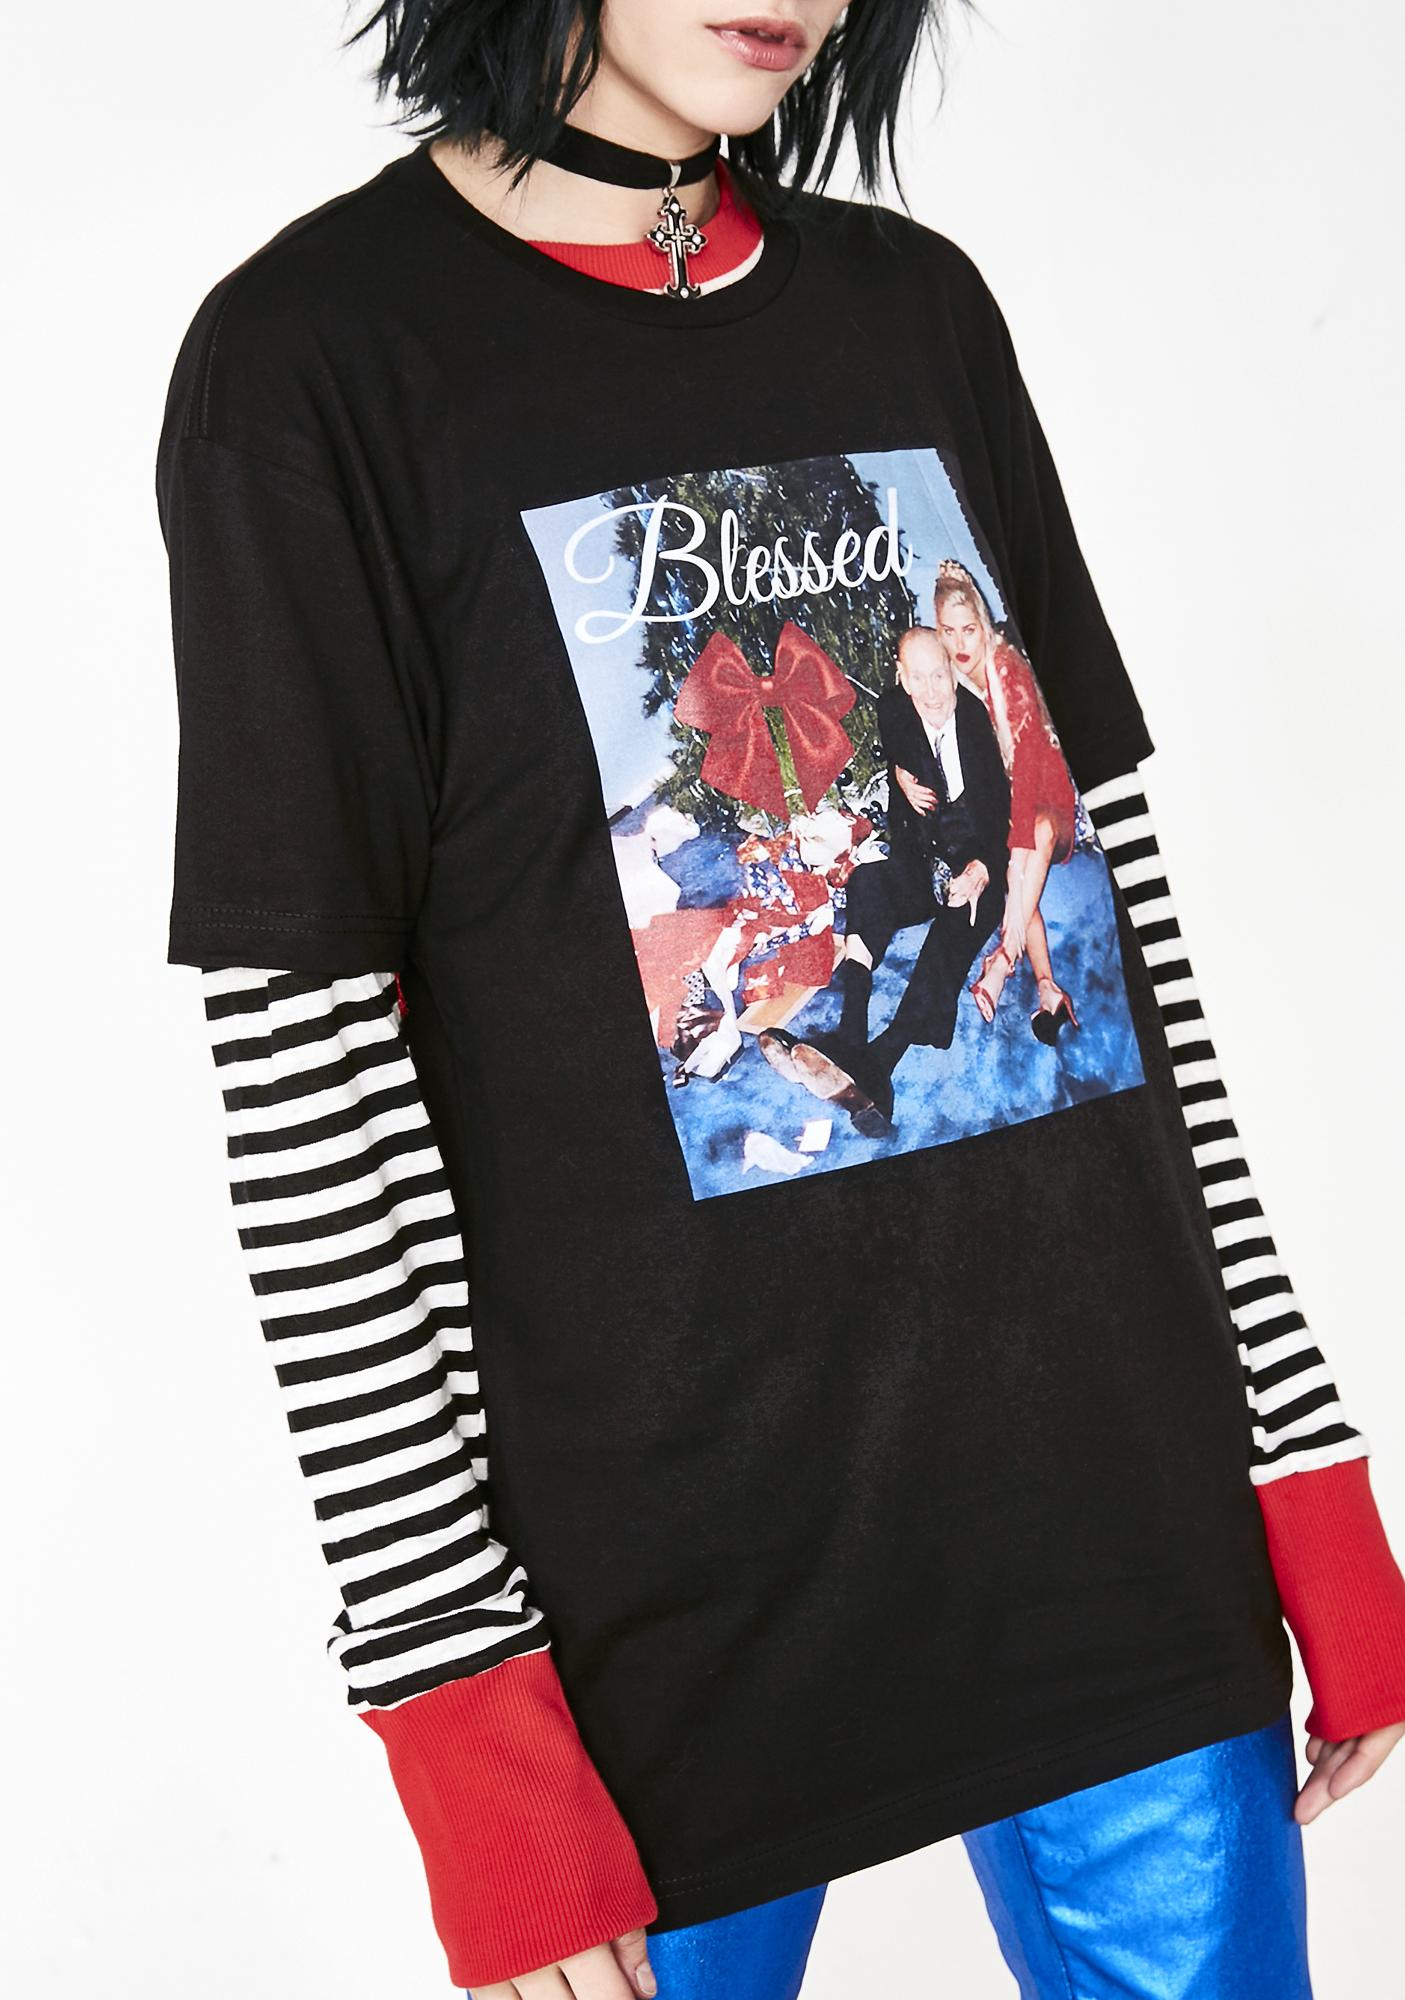 These Americans Blessed Xmas Tee